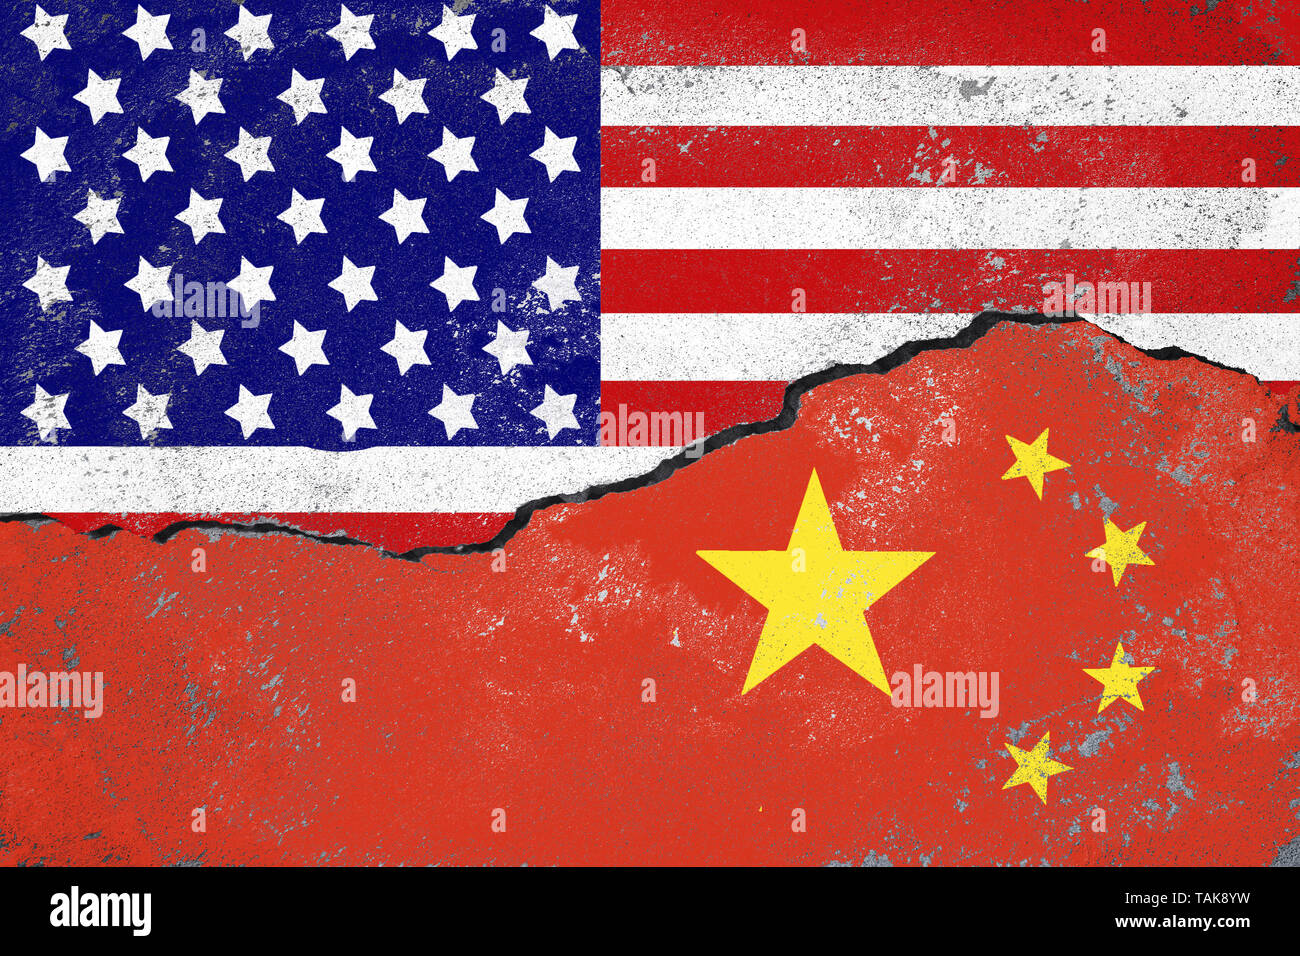 USA and China conflict concept.Flags of USA and China painted on cracked wall. - Stock Image